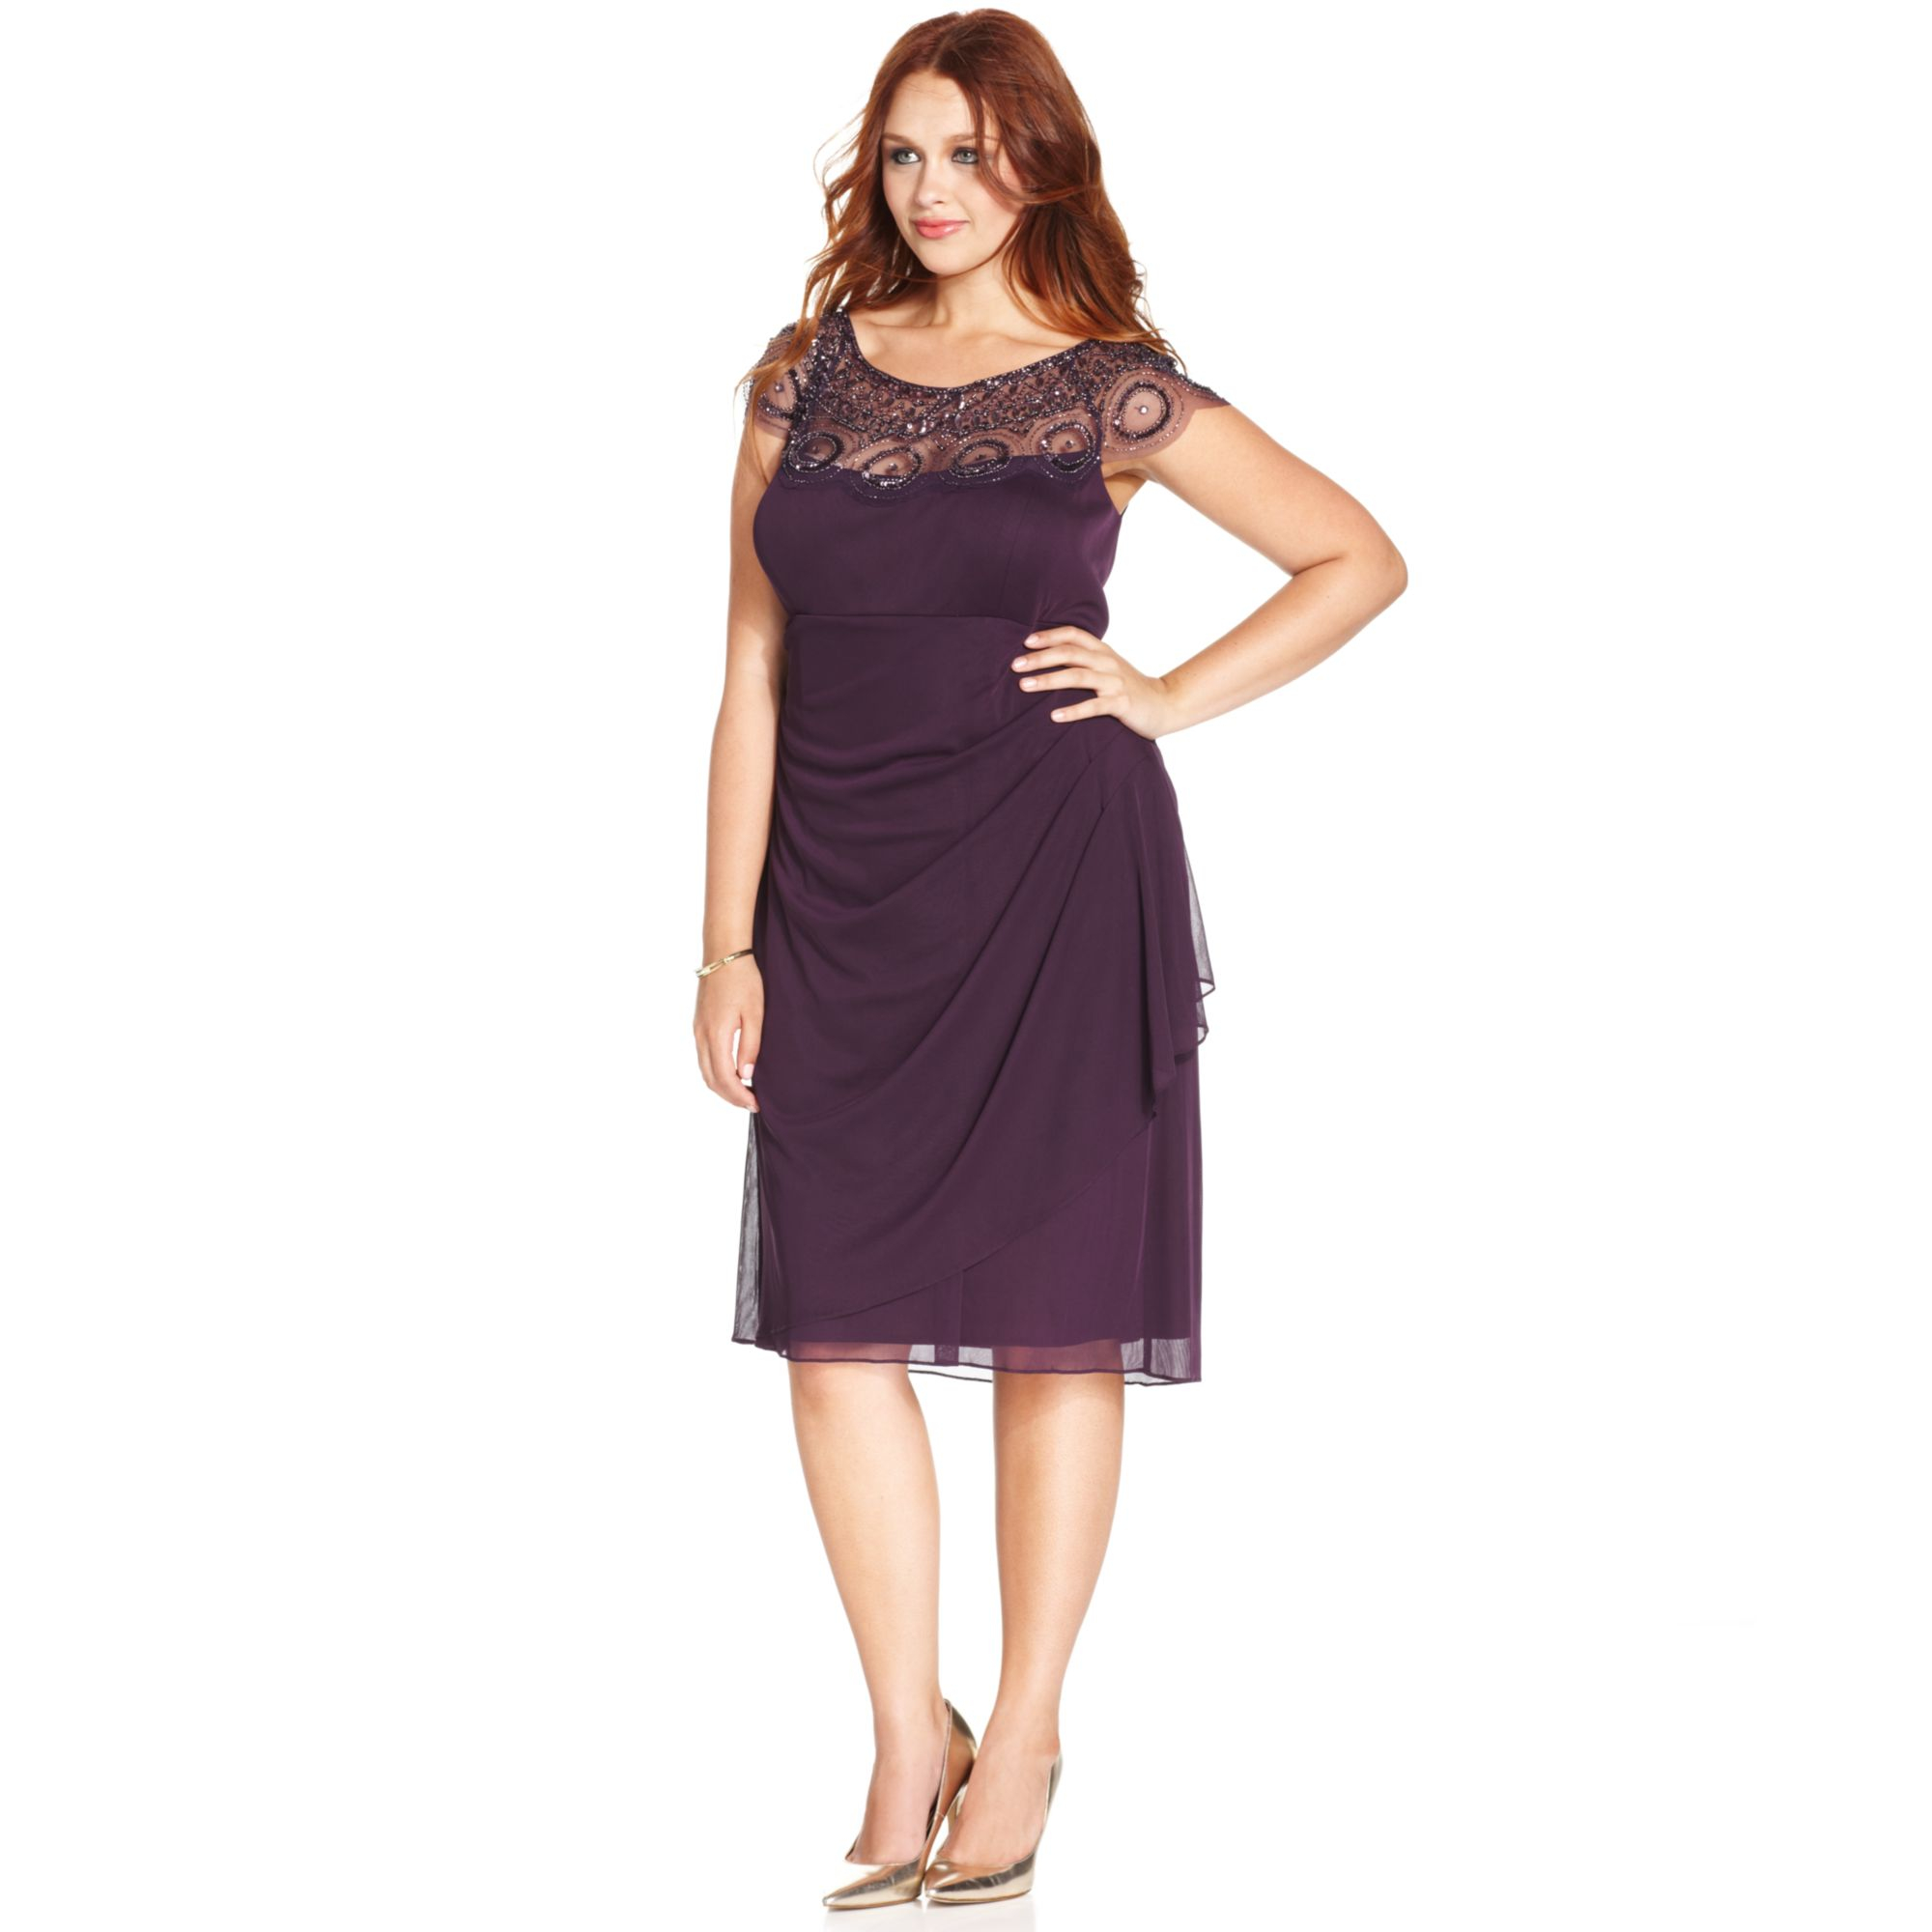 plus size clothes below $30